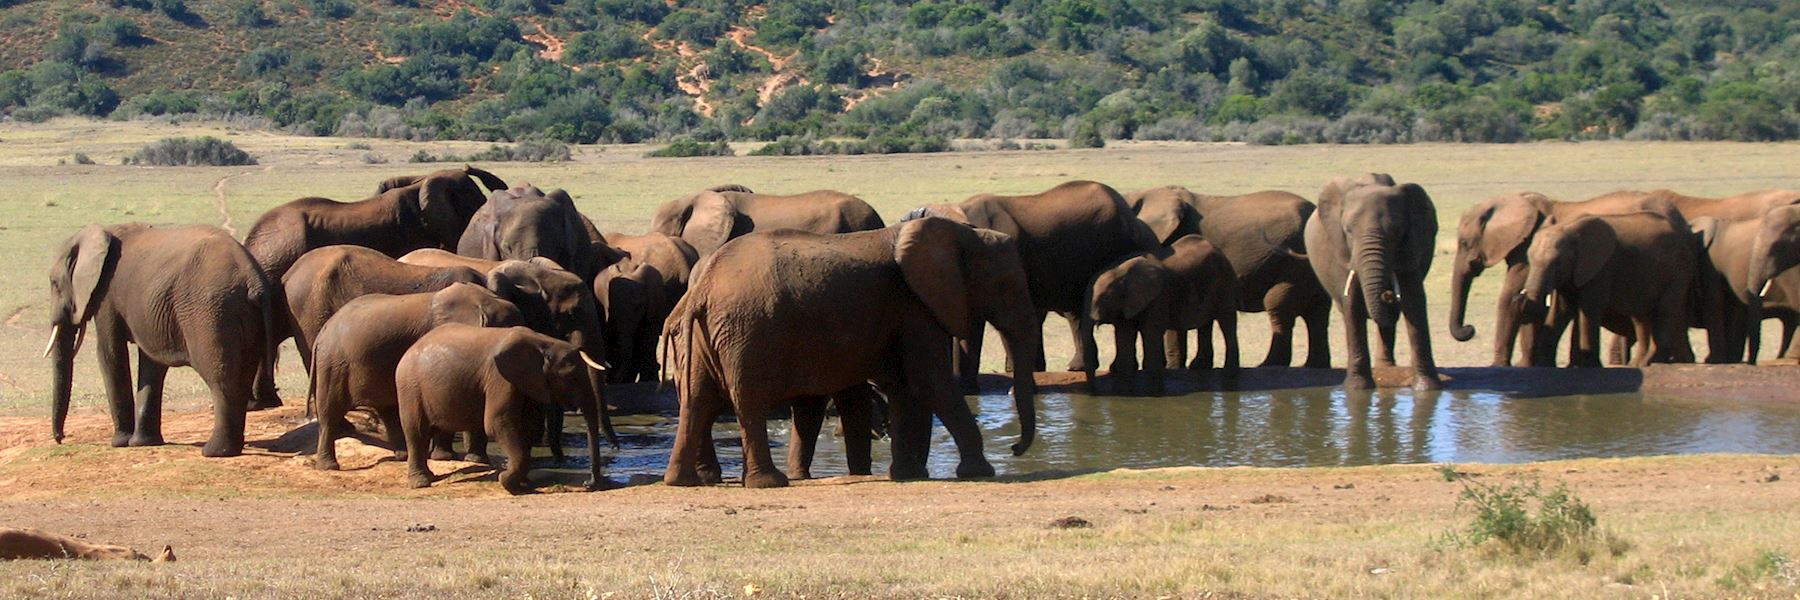 Visit Addo Elephant National Park, South Africa